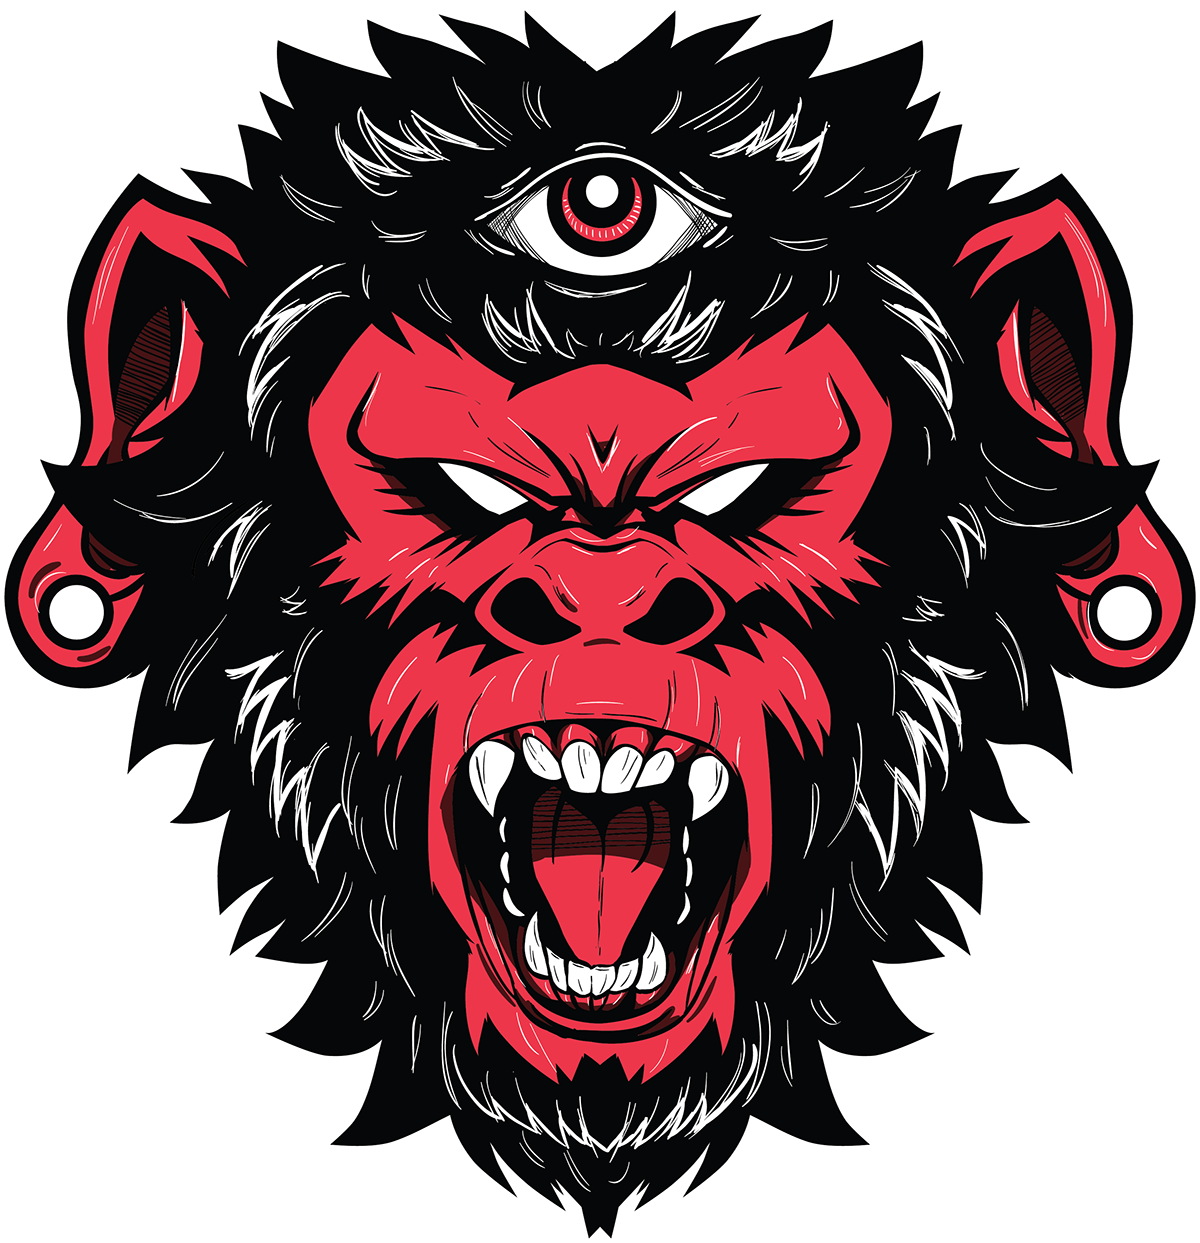 clipart royalty free download Ape clipart angry gorilla. Demon monkey vector illustration